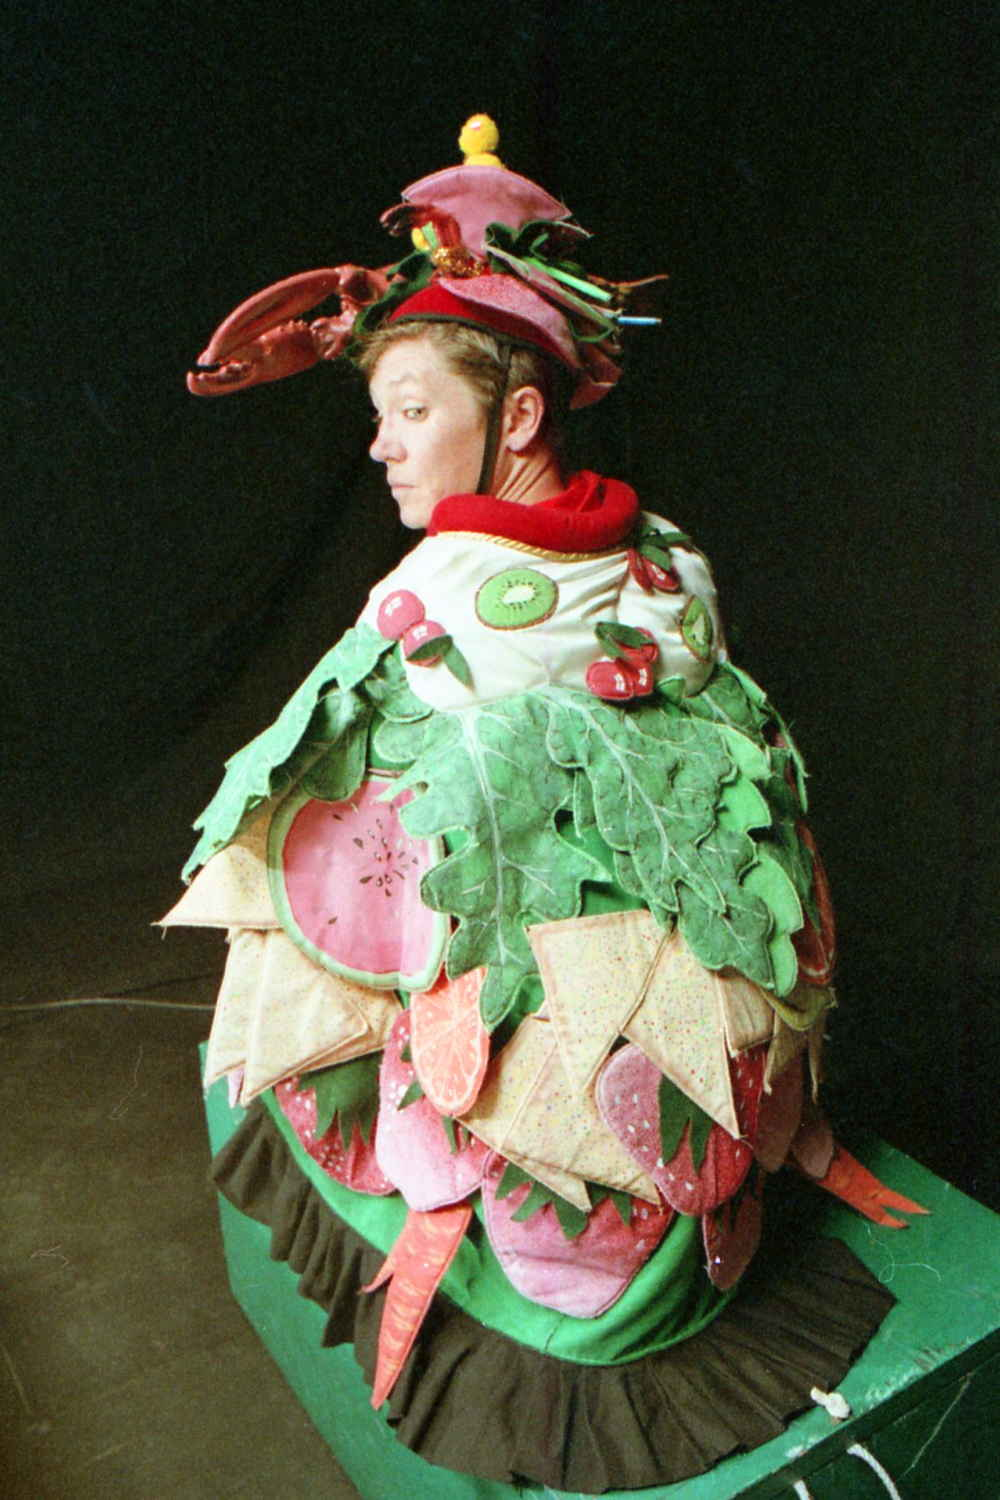 costumed actors squatting in embroidered cloak of green leaves and pink vegetables with a lobster helmet